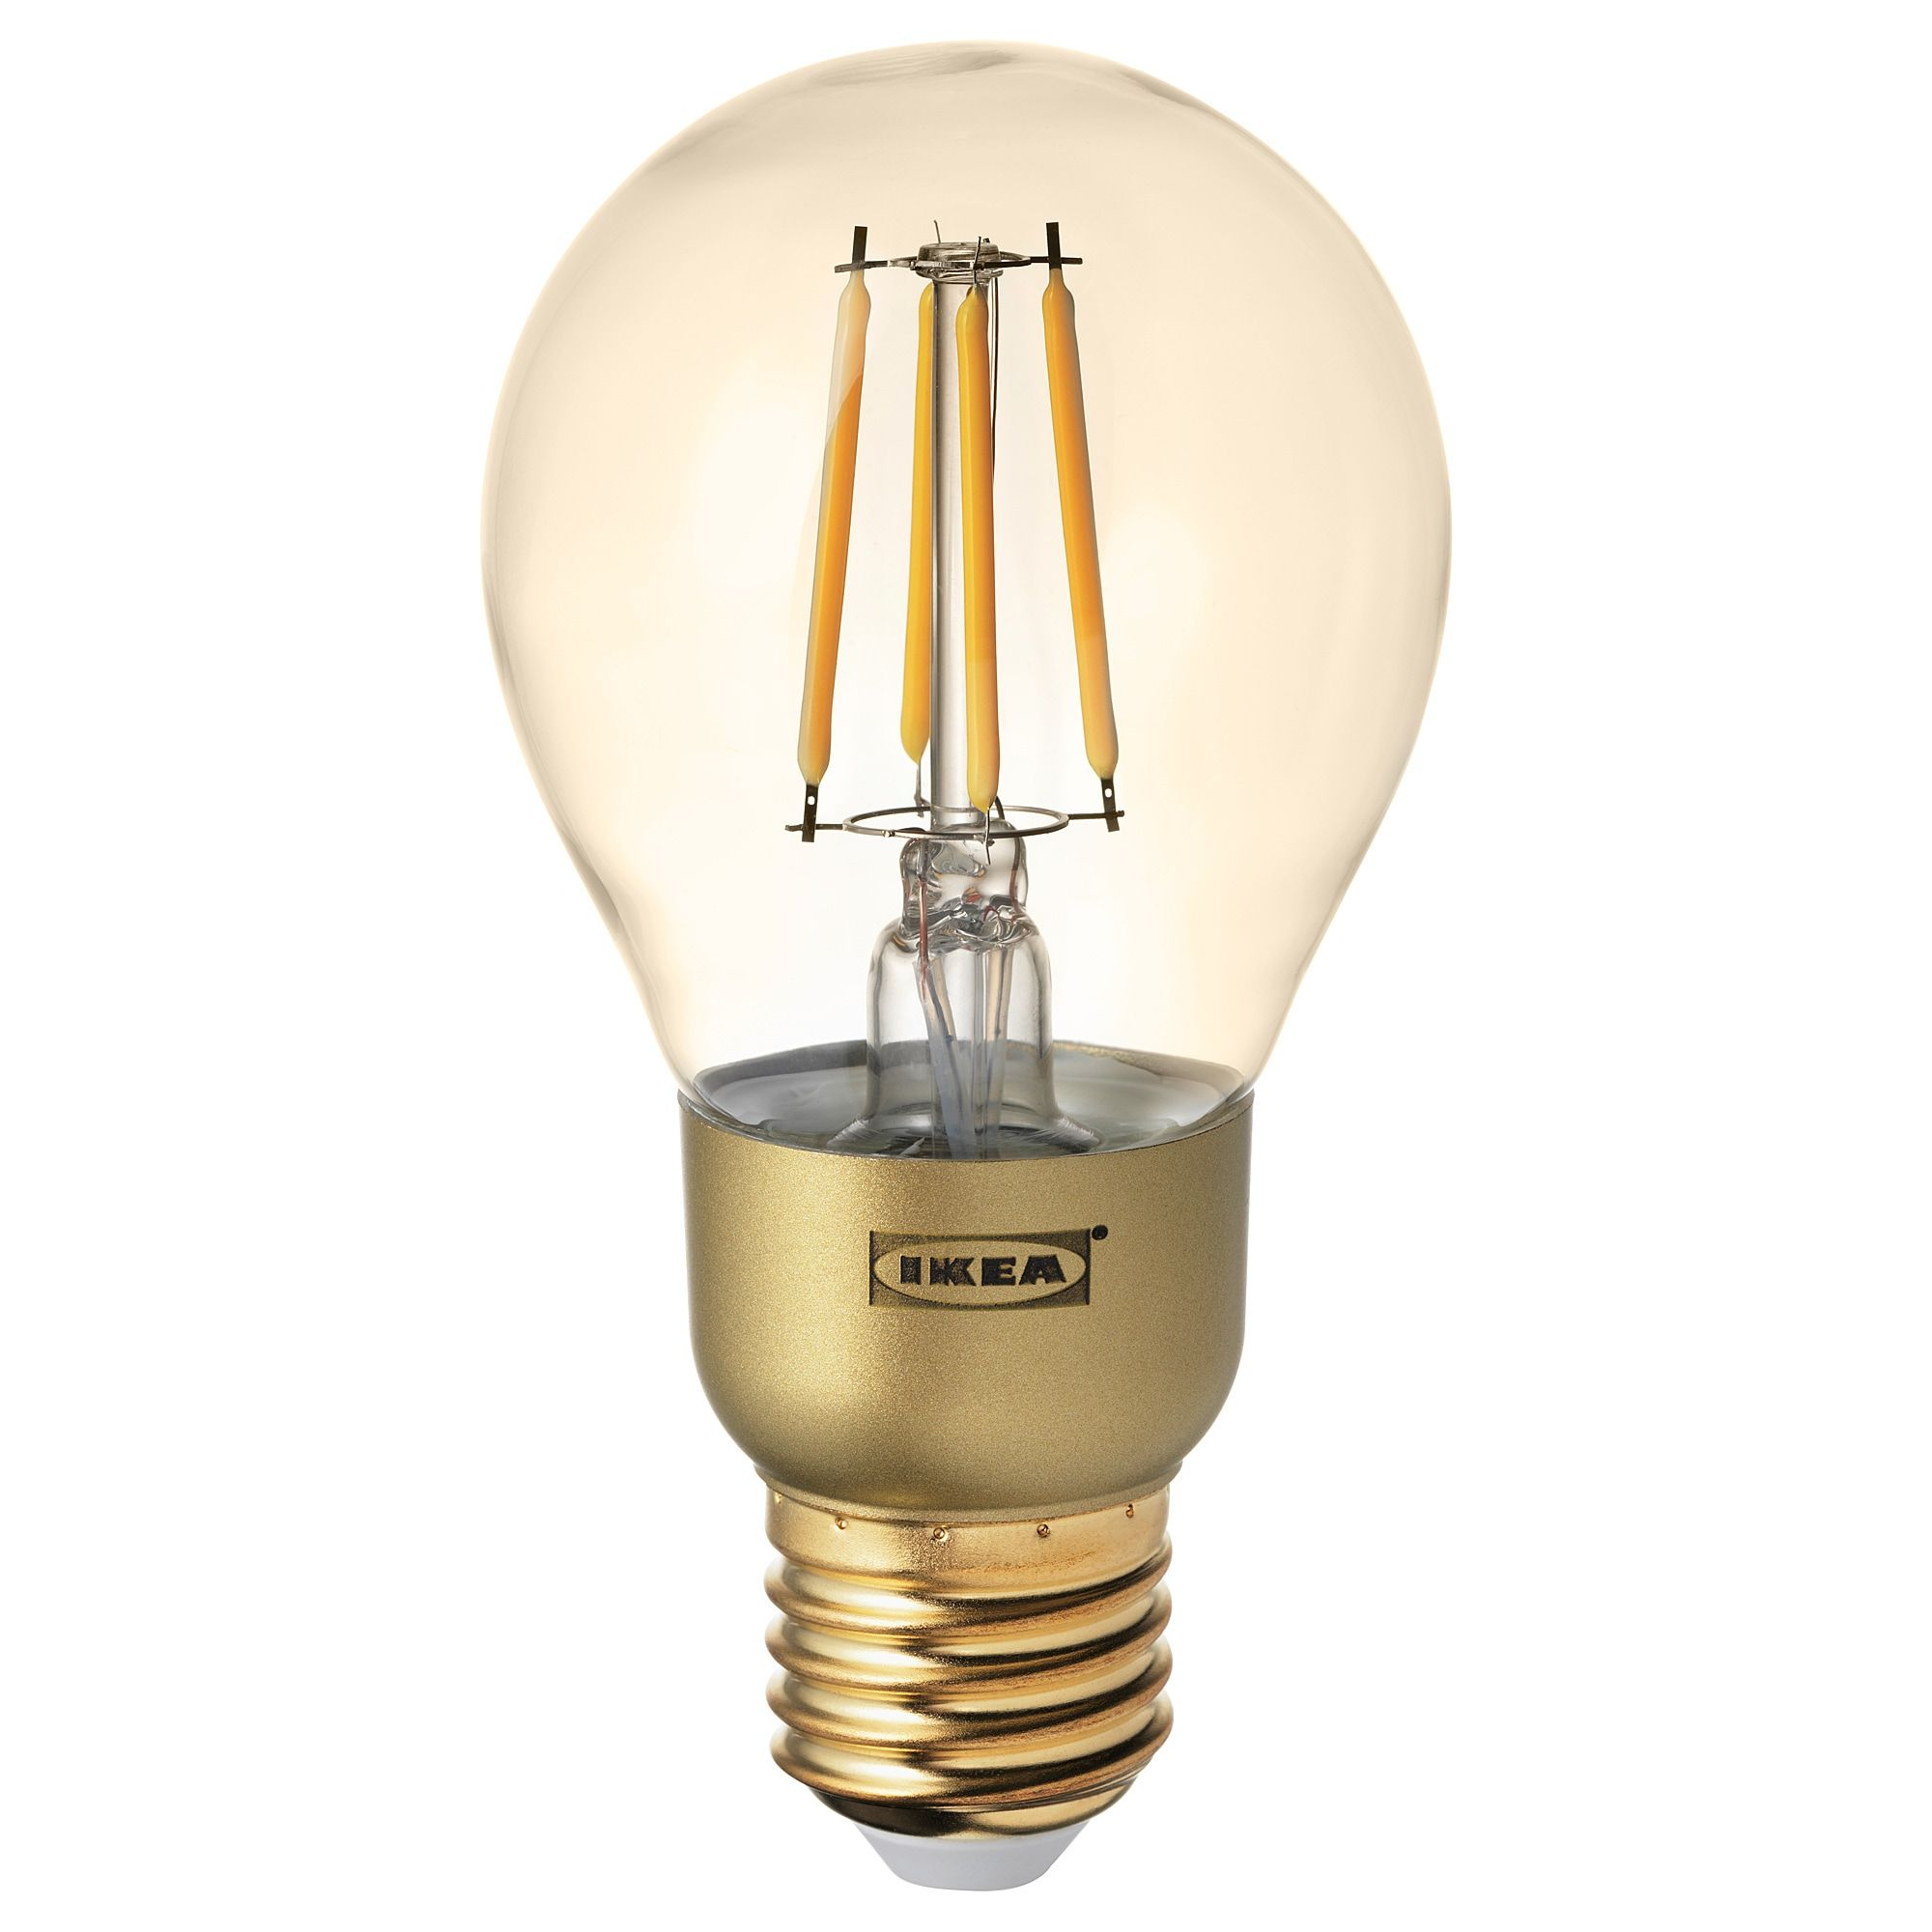 Furniture Home Furnishings Find Your Inspiration Led Bulb Led Light Bulb Bulb